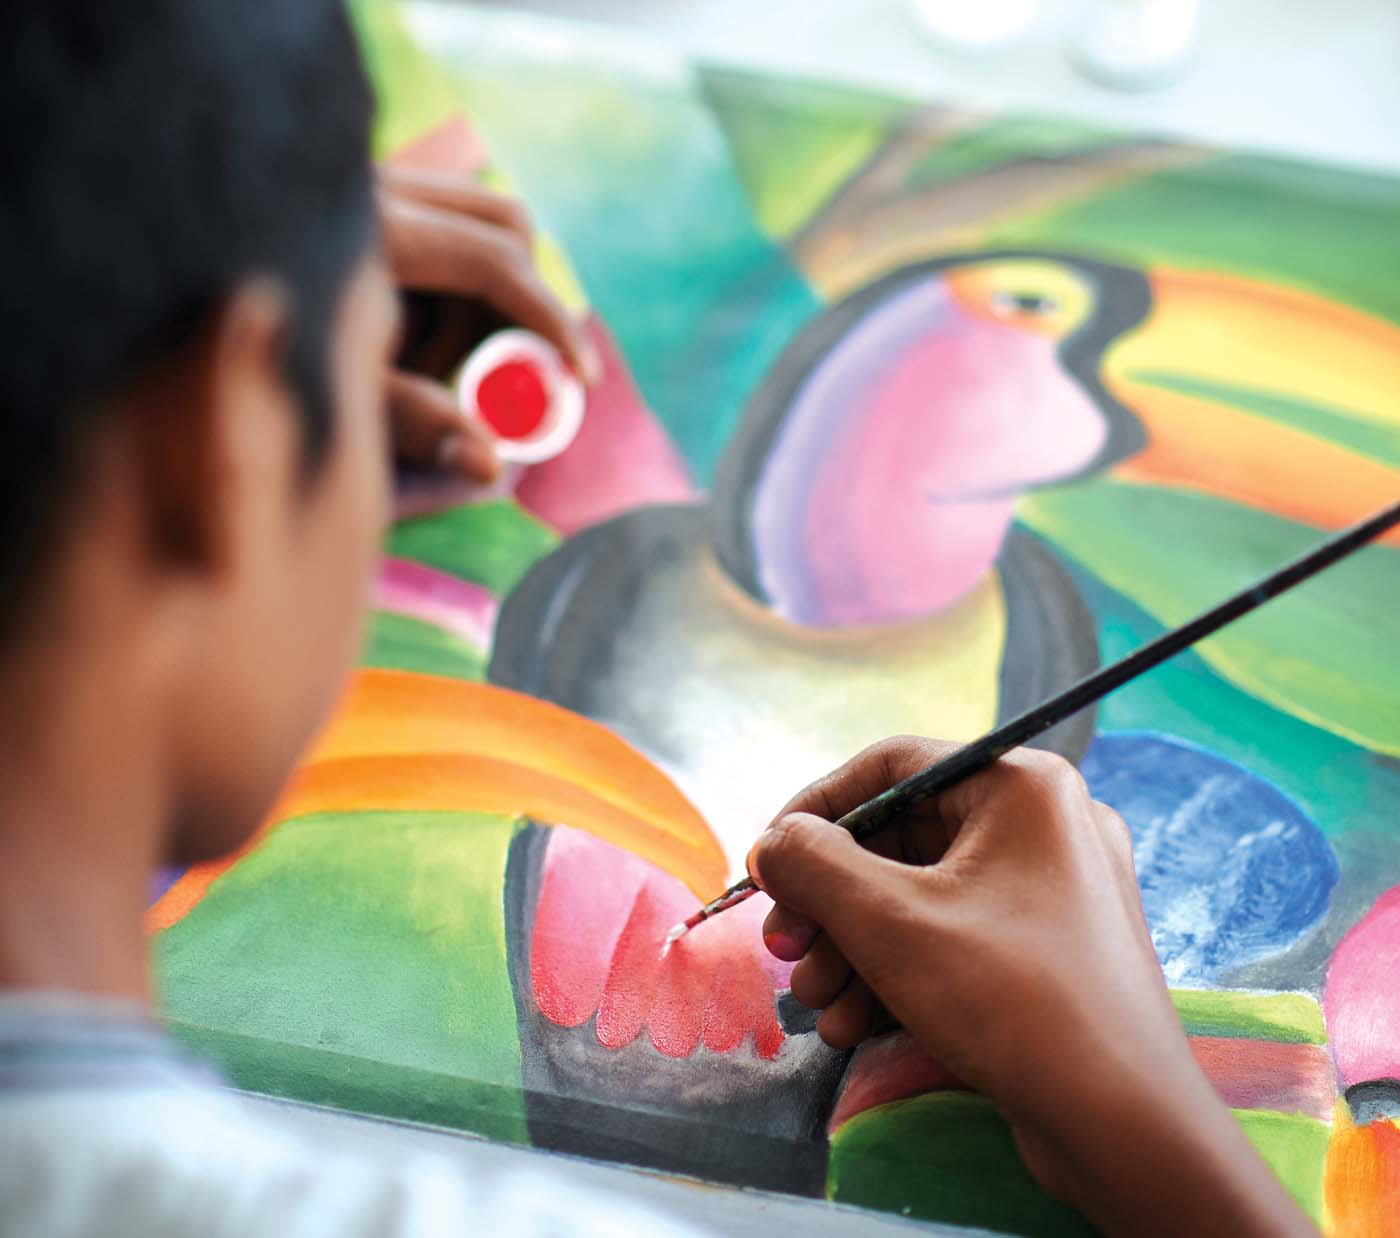 MJF Kids of various ages attend art and craft classes at the MJF Centre in Moratuwa where they paint to their hearts content and enjoy themselves immensely. Art and craft classes are used as a medium to help these children express their aspirations and their fears.